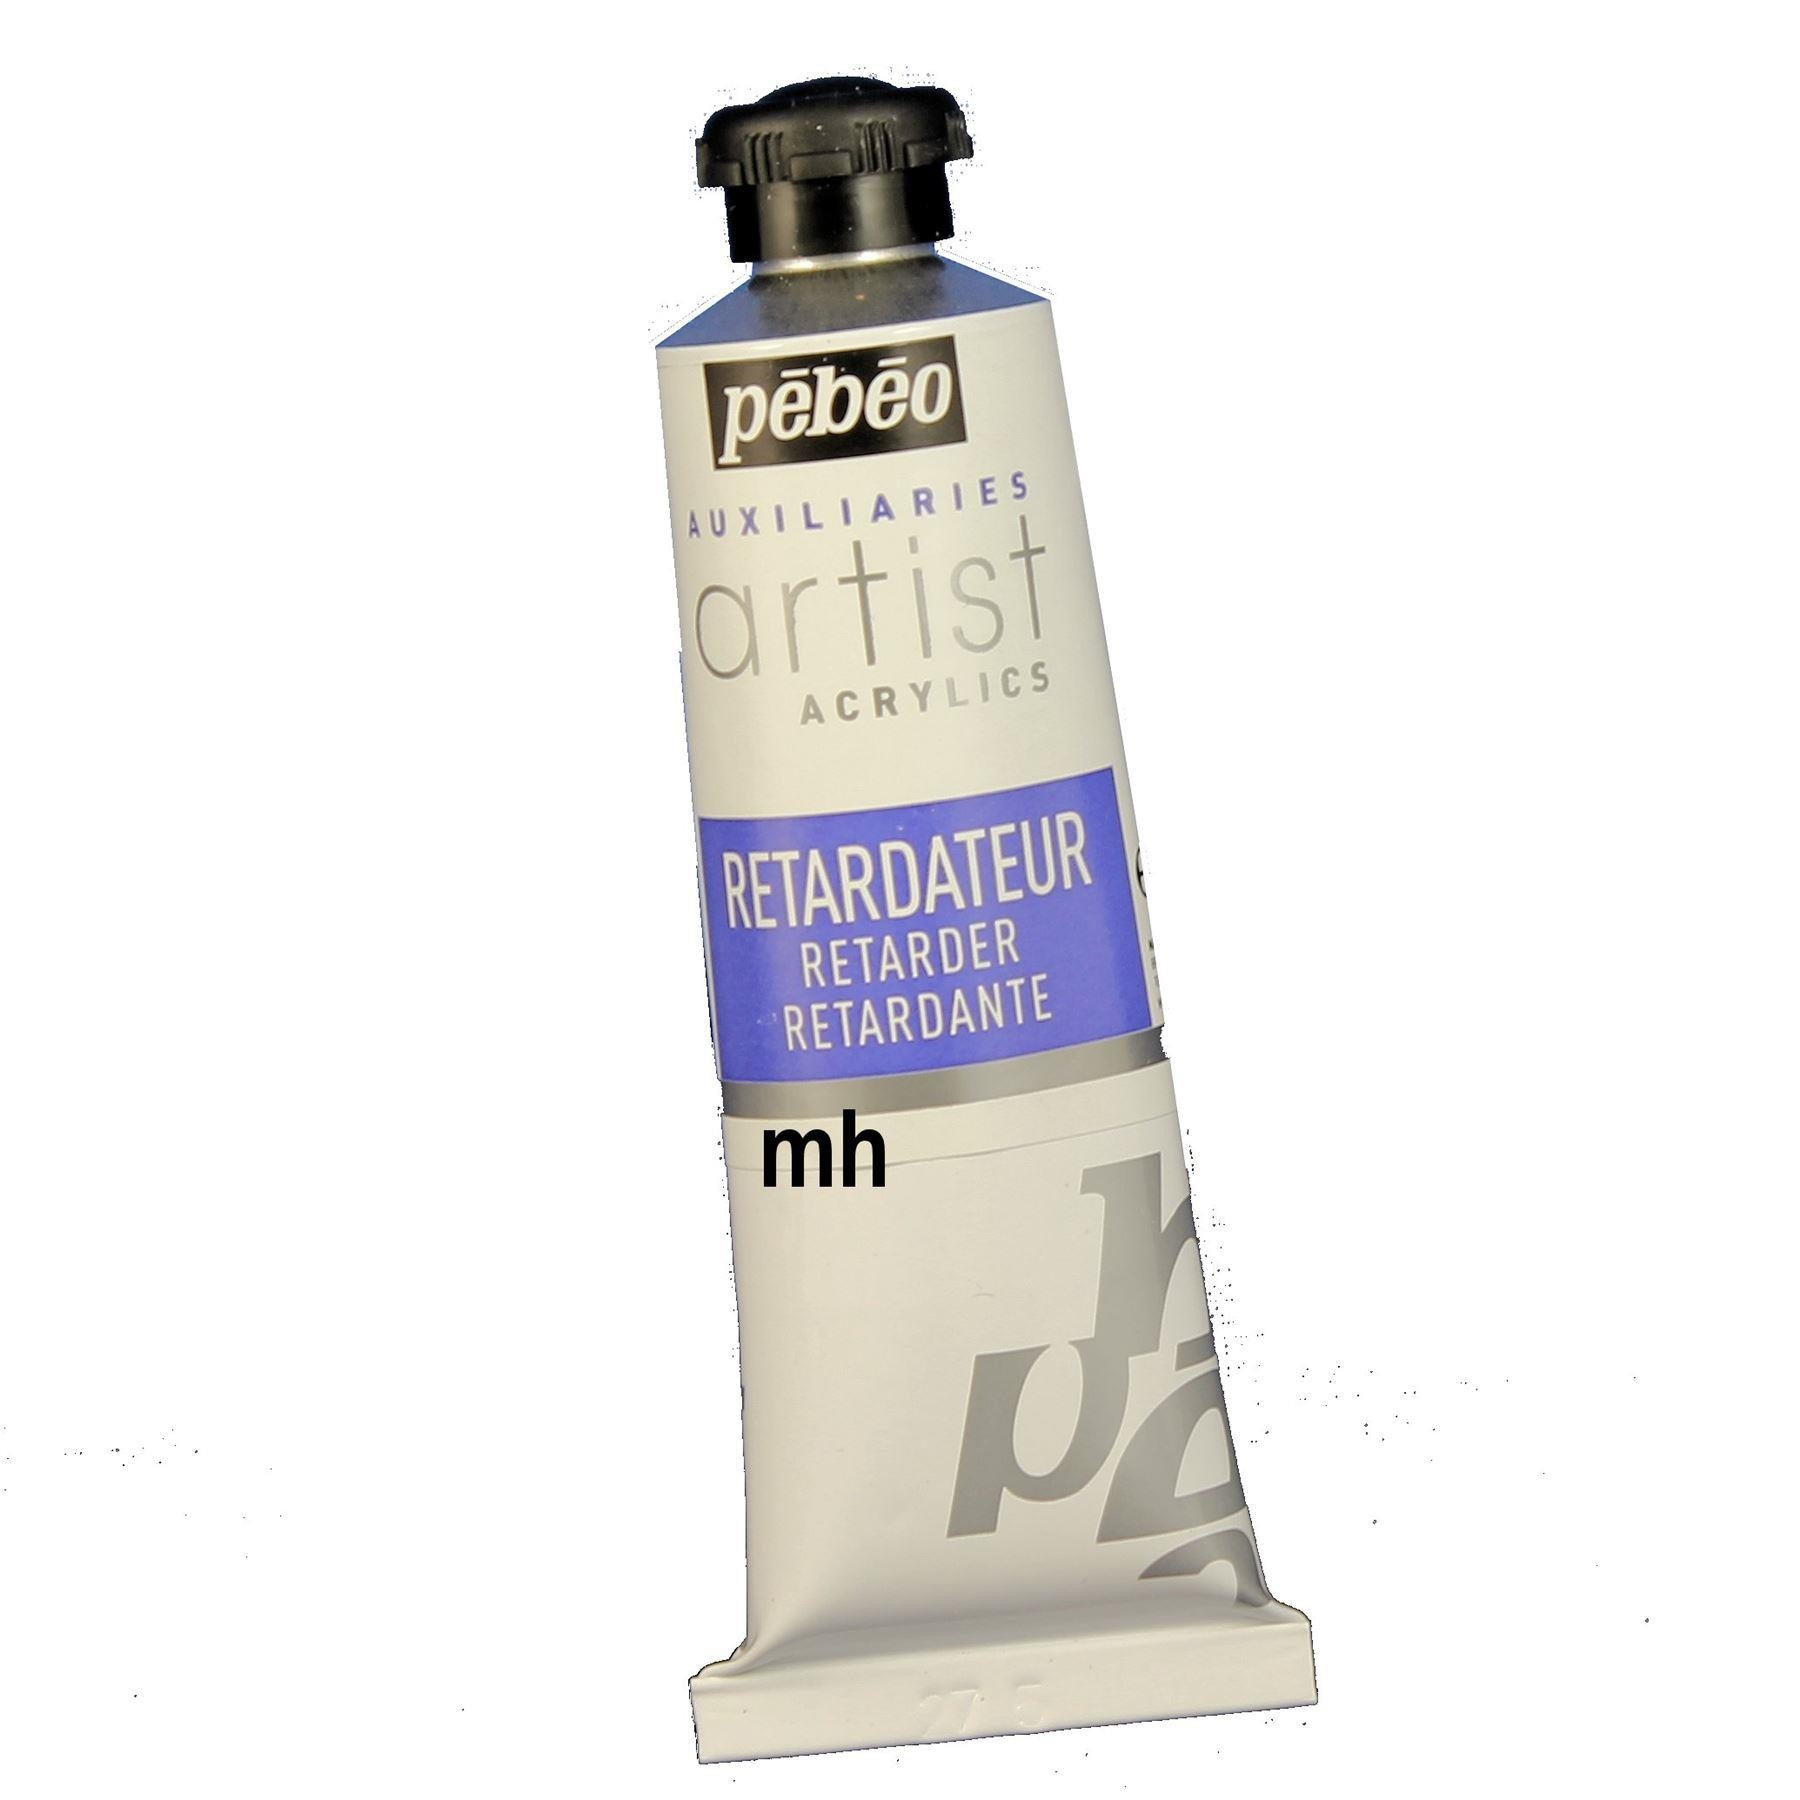 Pebeo retarder 37ml slow down drying time of acrylic paints